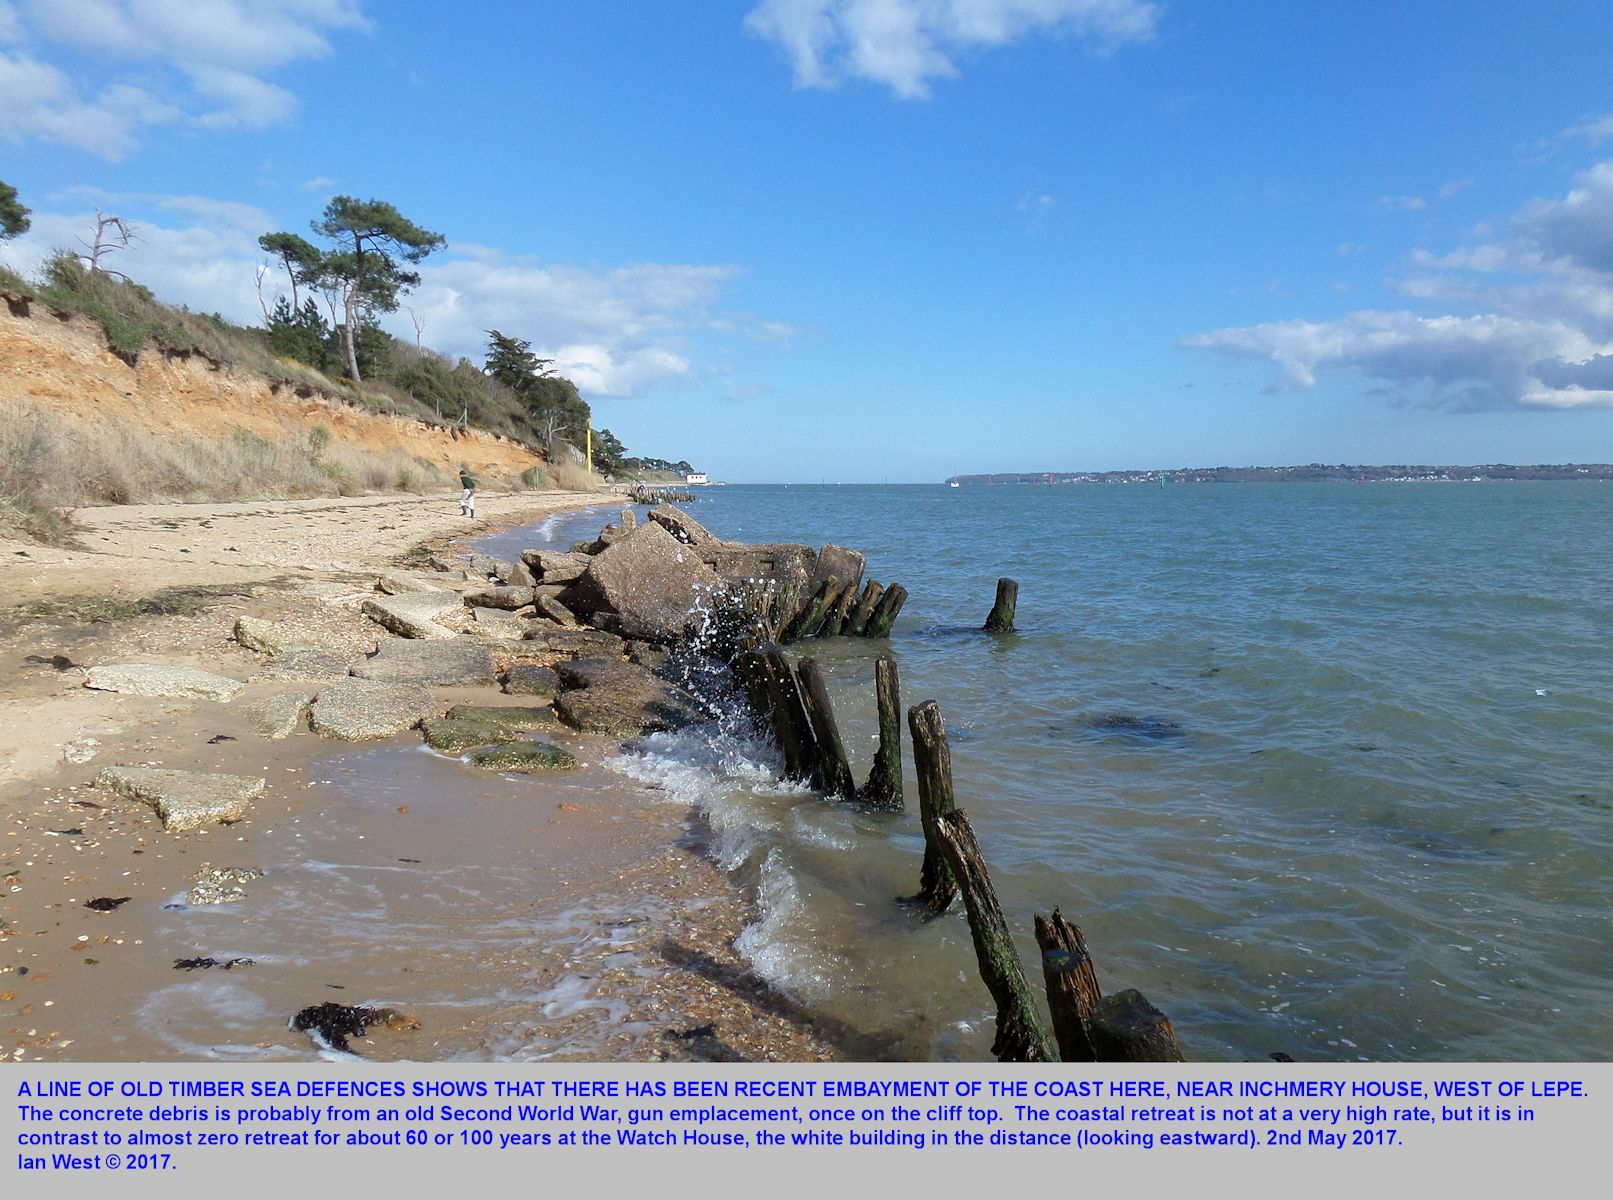 Some cliff erosion and retreat of the beach at some old gun emplacement debris, near Inchmery House, west of Lepe Beach, Hampshire, as seen on 2nd May 2017